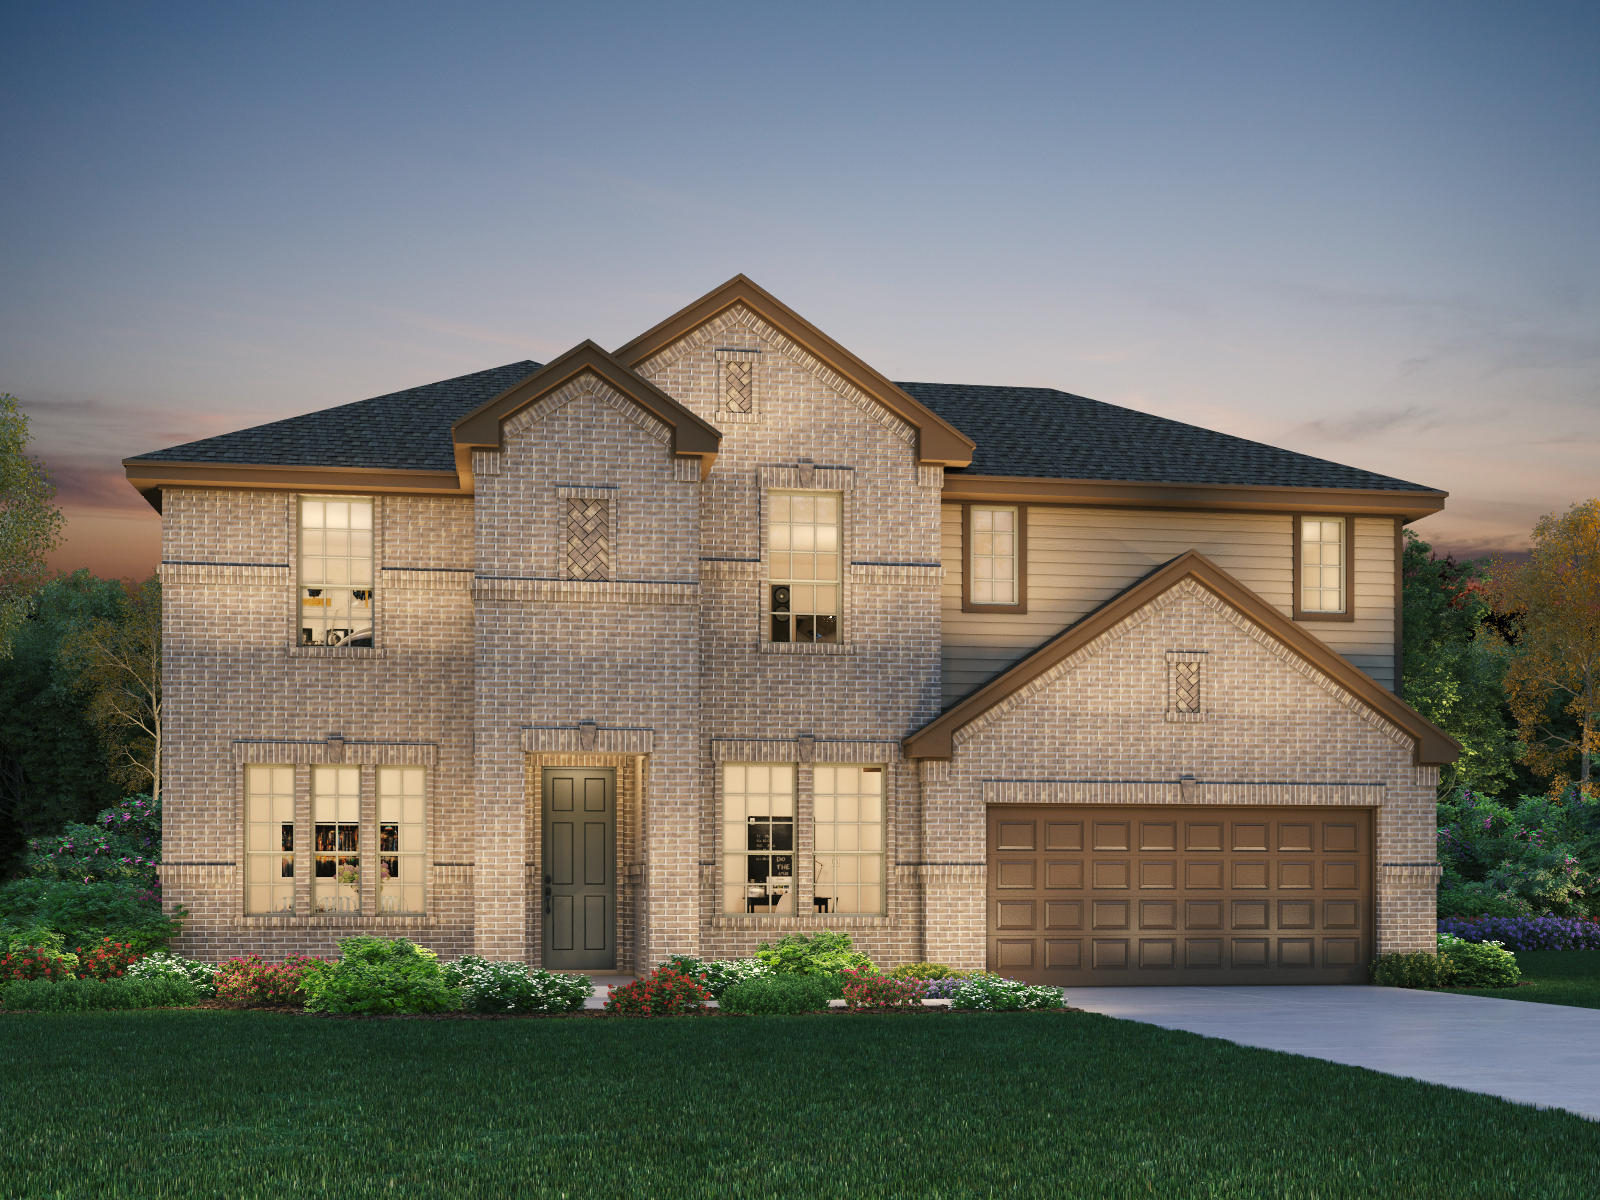 The Cardiff (5234) Plan, Sugar Land, TX 77498 - 4 Bed, 3 5 Bath  Single-Family Home - 5 Photos | Trulia